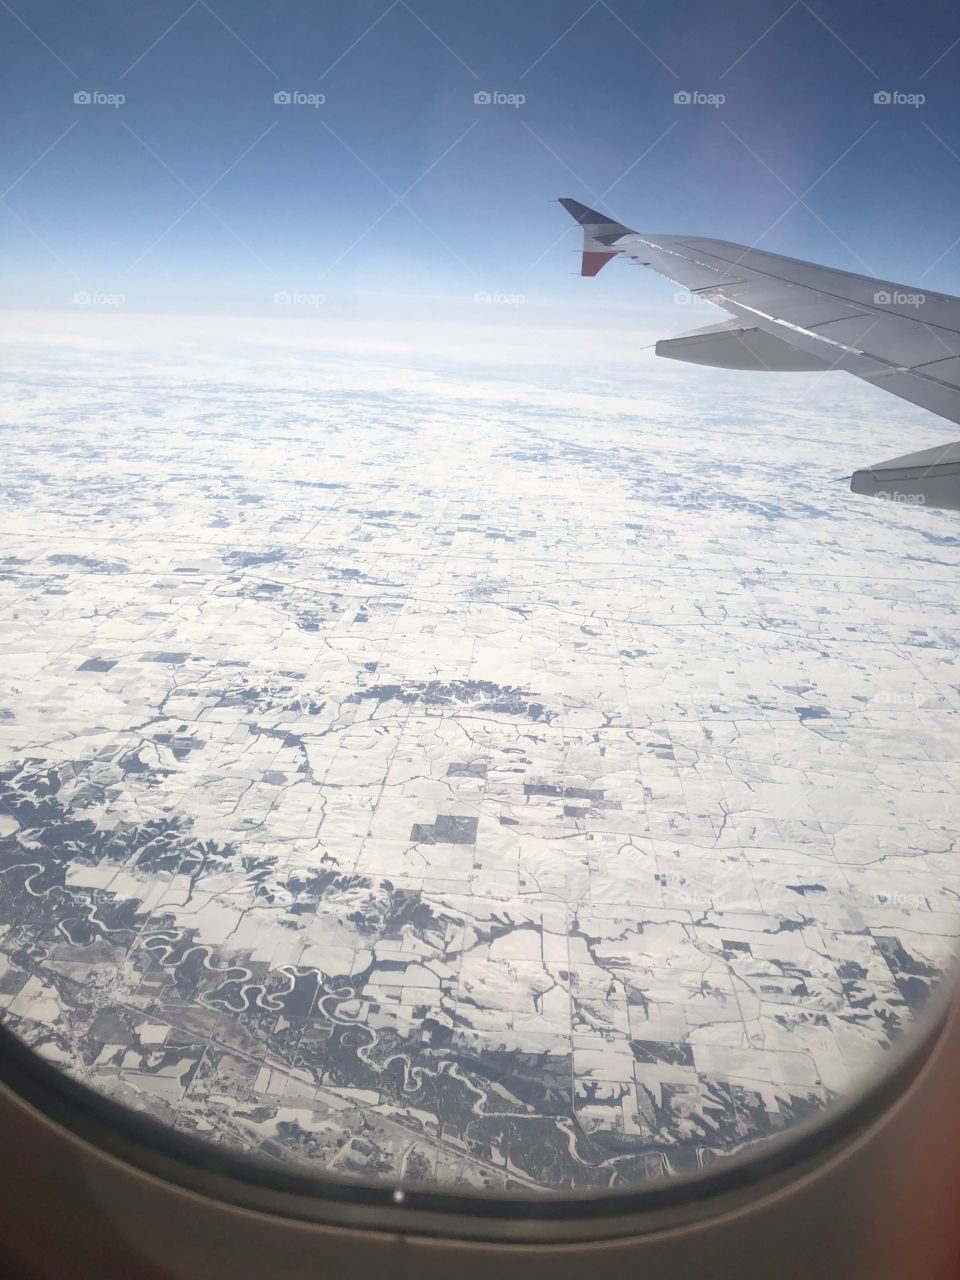 Flying over to Las Vegas from New York sore this view , snow everywhere.